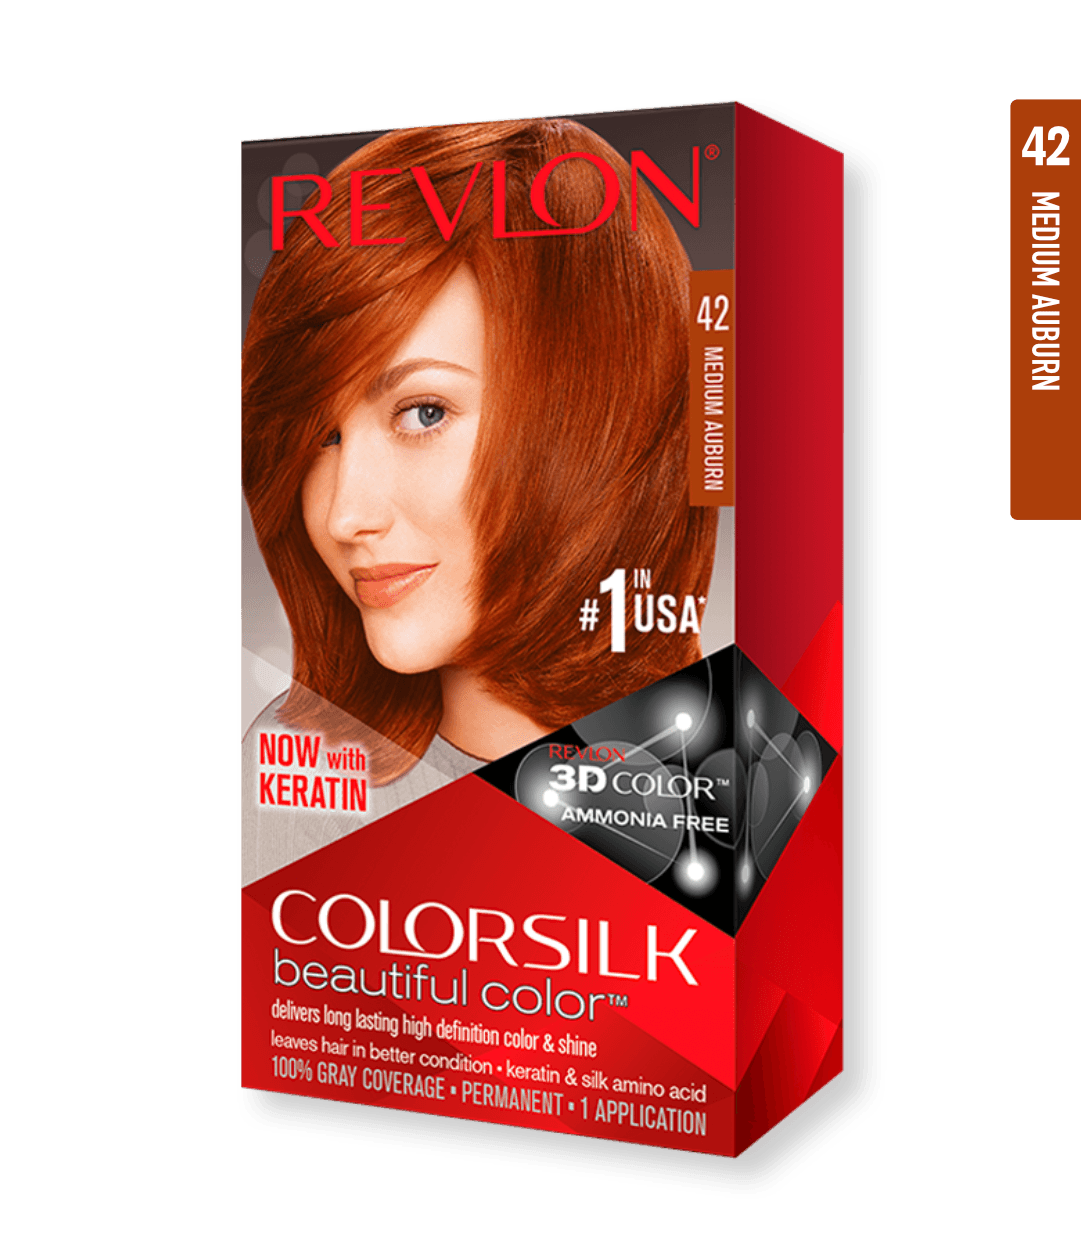 Revlon ColorSilk 42 Medium Auburn | Duo Cosmetics